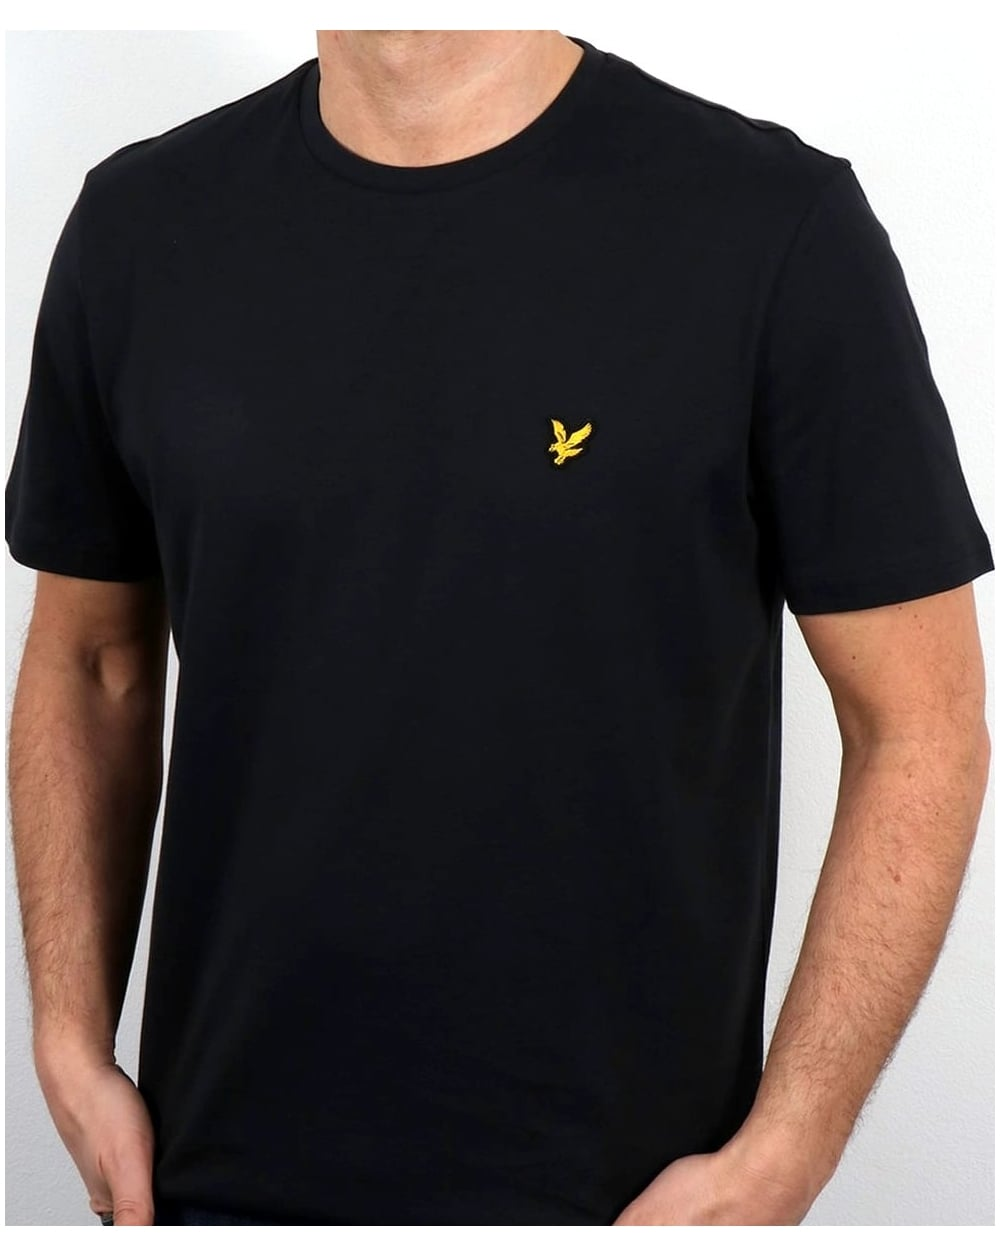 lyle and scott t shirt black lyle scott t shirt. Black Bedroom Furniture Sets. Home Design Ideas